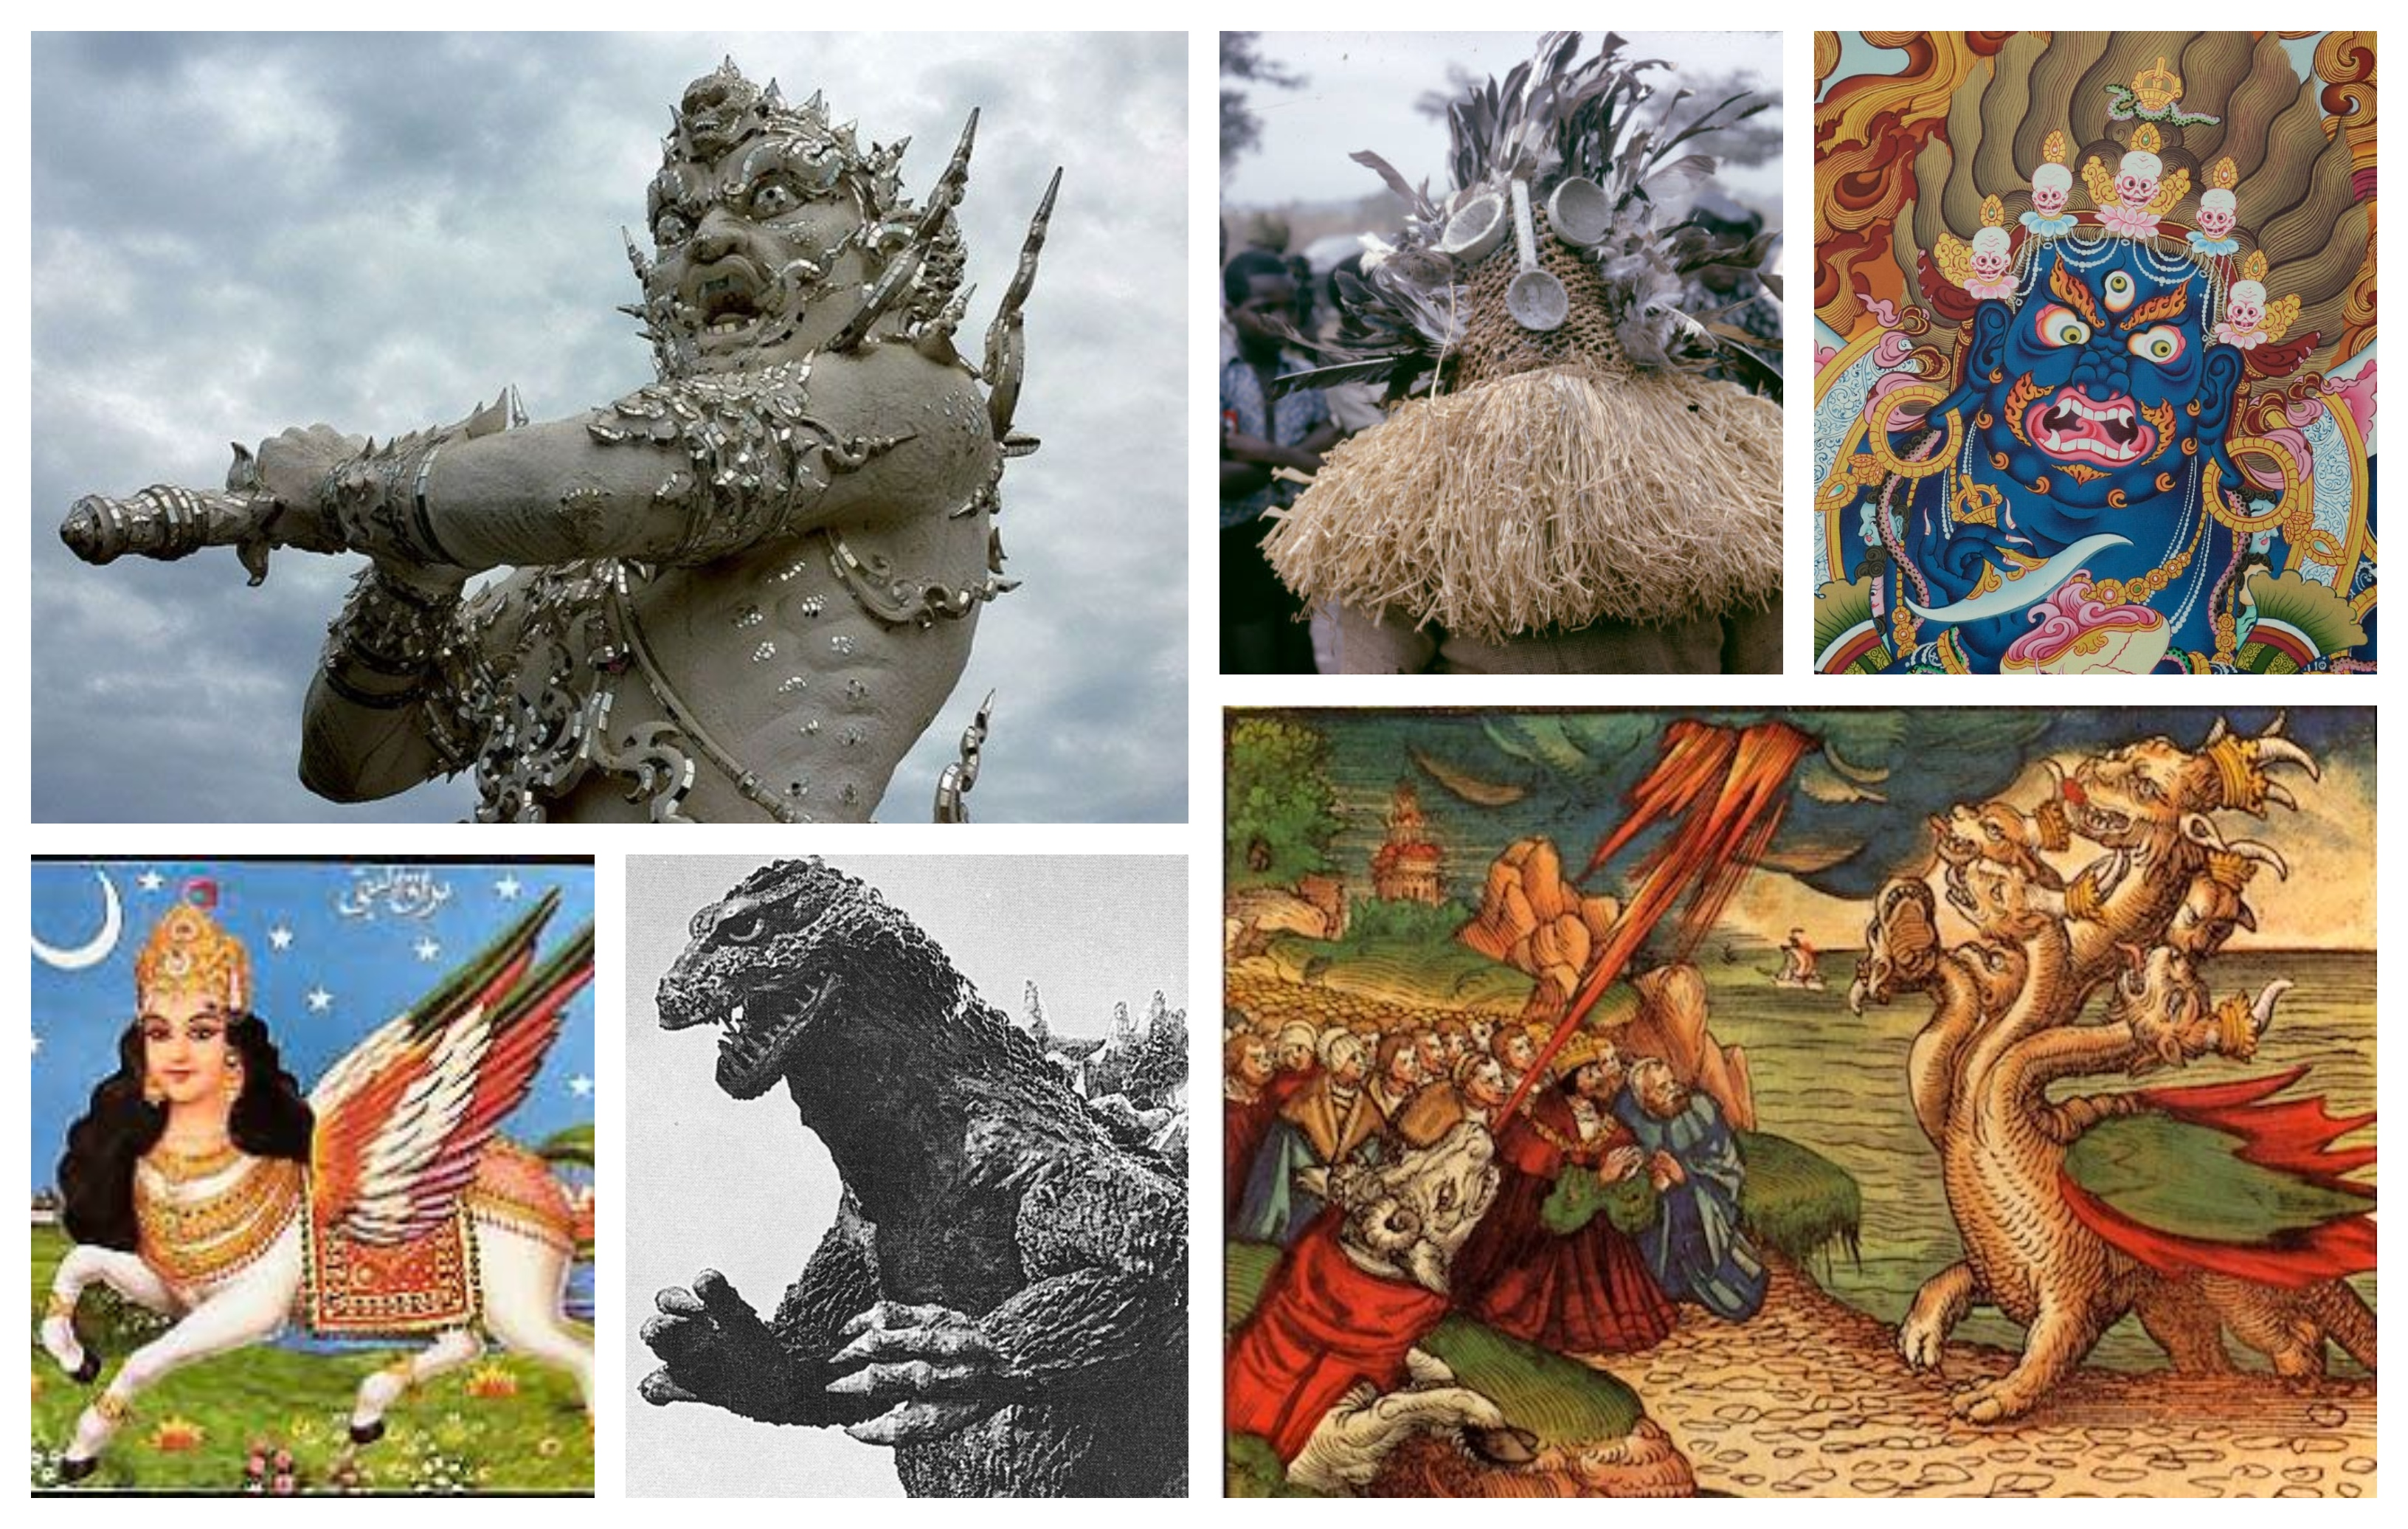 A collage of monstrous figures from various religious traditions